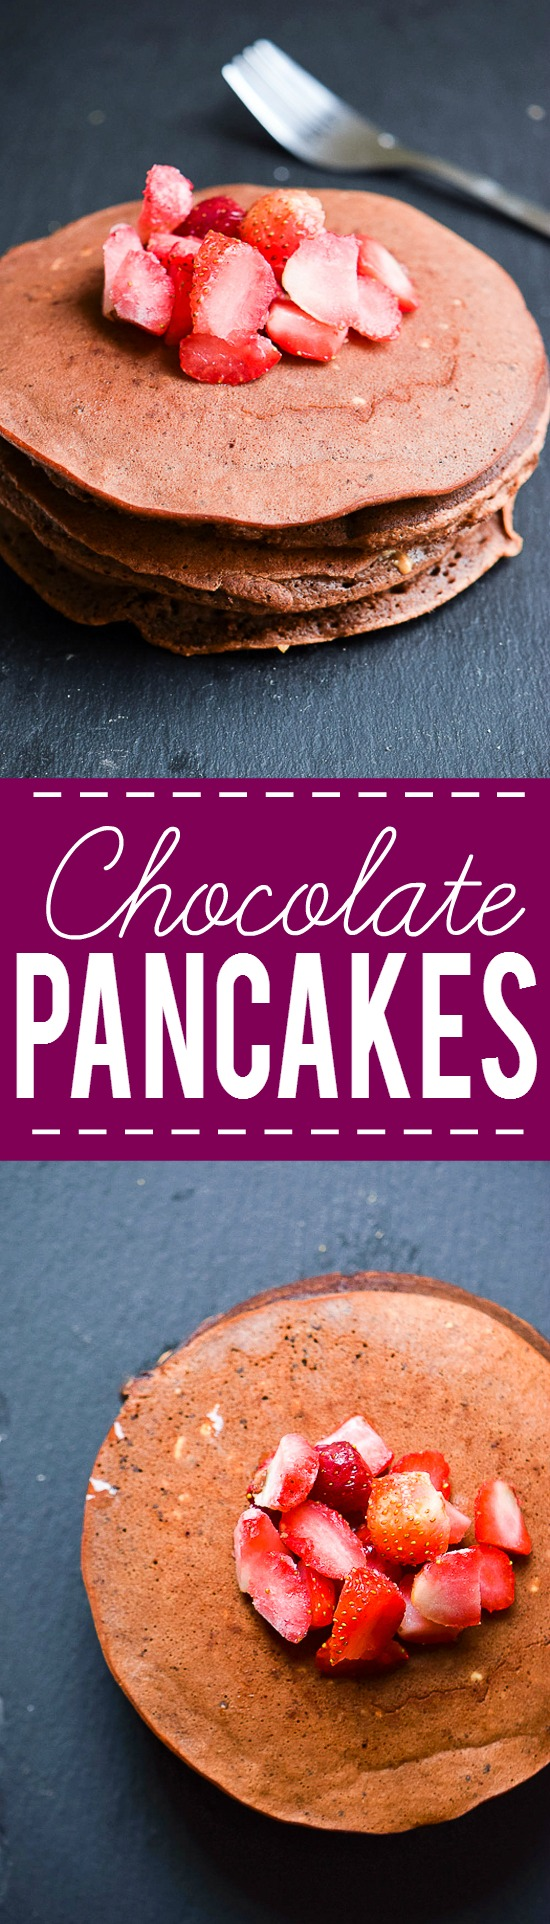 Chocolate Pancakes Recipe -A decadent way to start the day, these Chocolate Pancakes will add a sweet note to your morning. Top them with berries, whipped cream, or powdered sugar! Amazing for a delicious, decadent, quick and easy breakfast recipe!